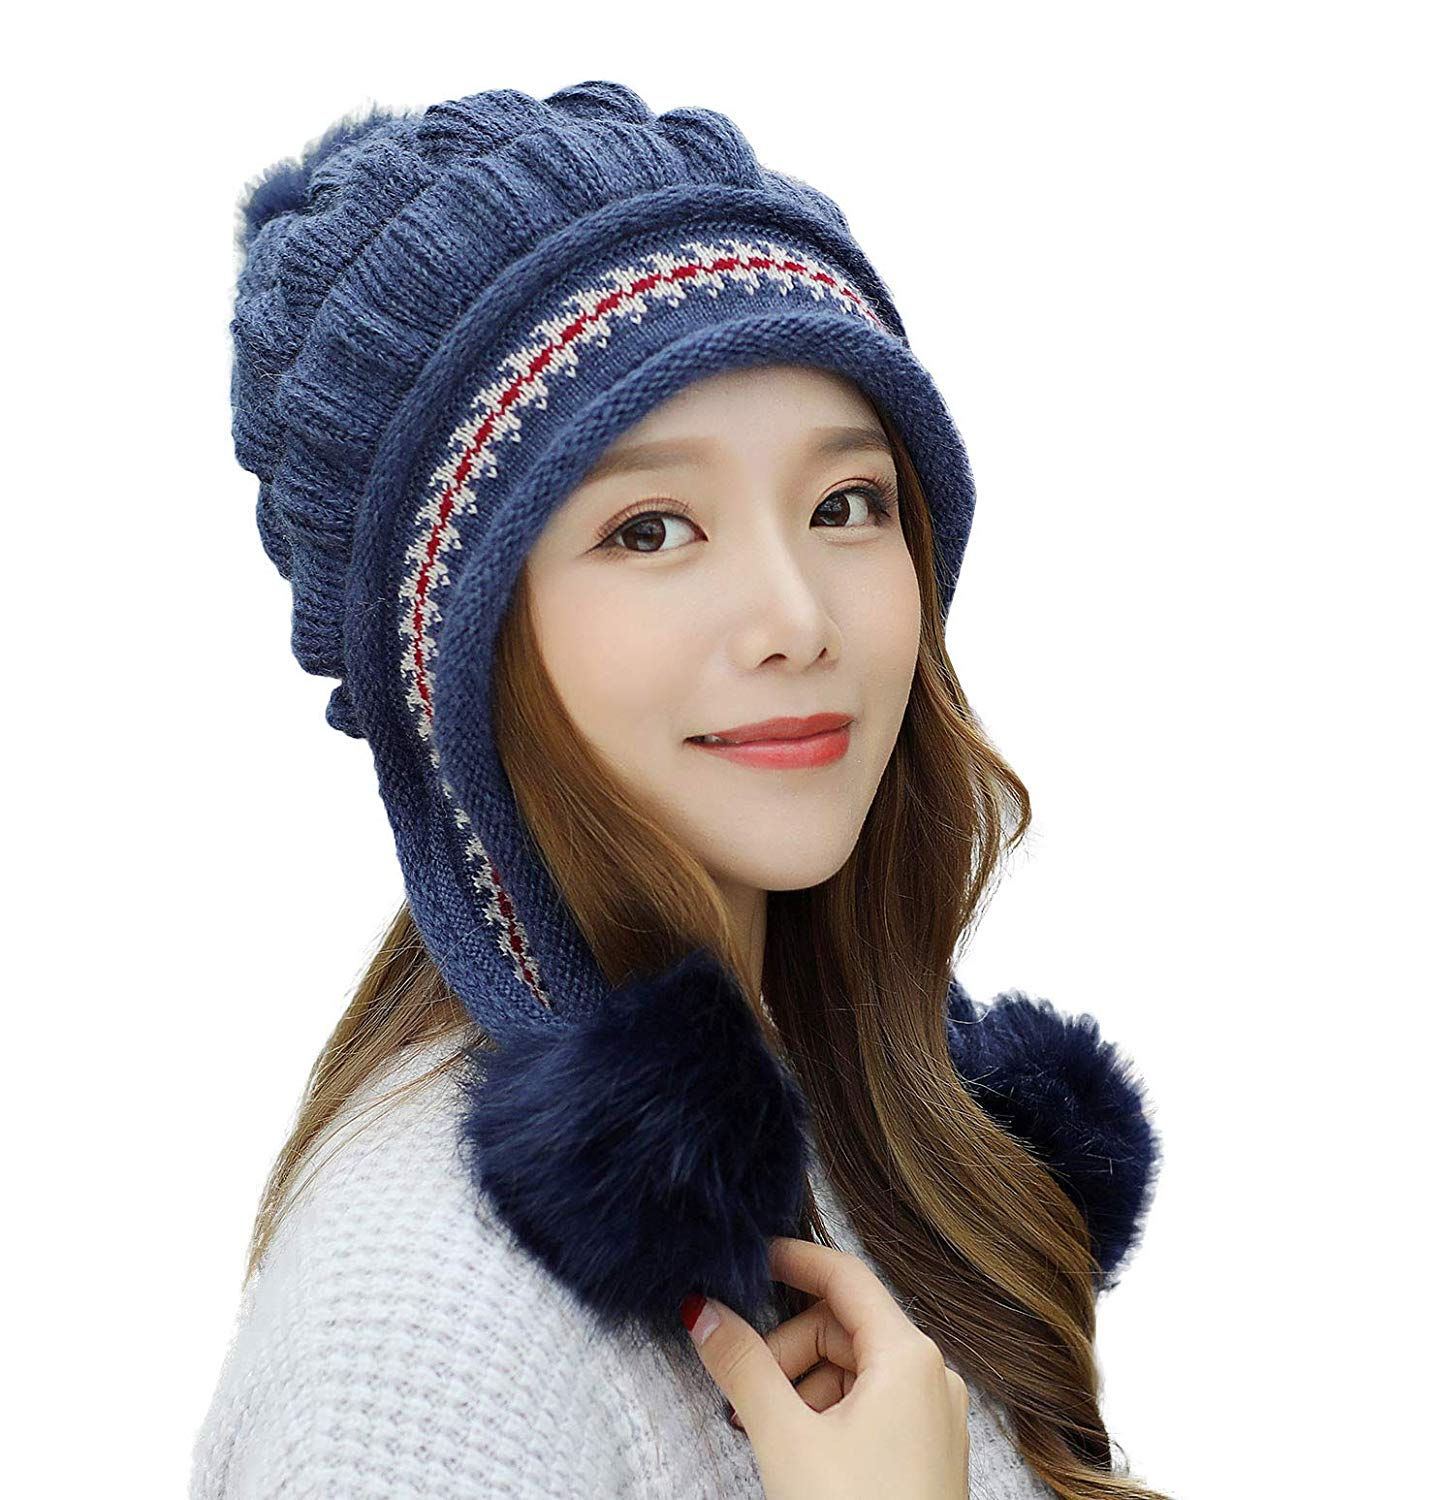 70d1a077ce0c1 Get Quotations · E.Joy Online Women Peruvian Earflap Beanie Hat Knitted Pom Winter  Snow Ski Hat Ladies